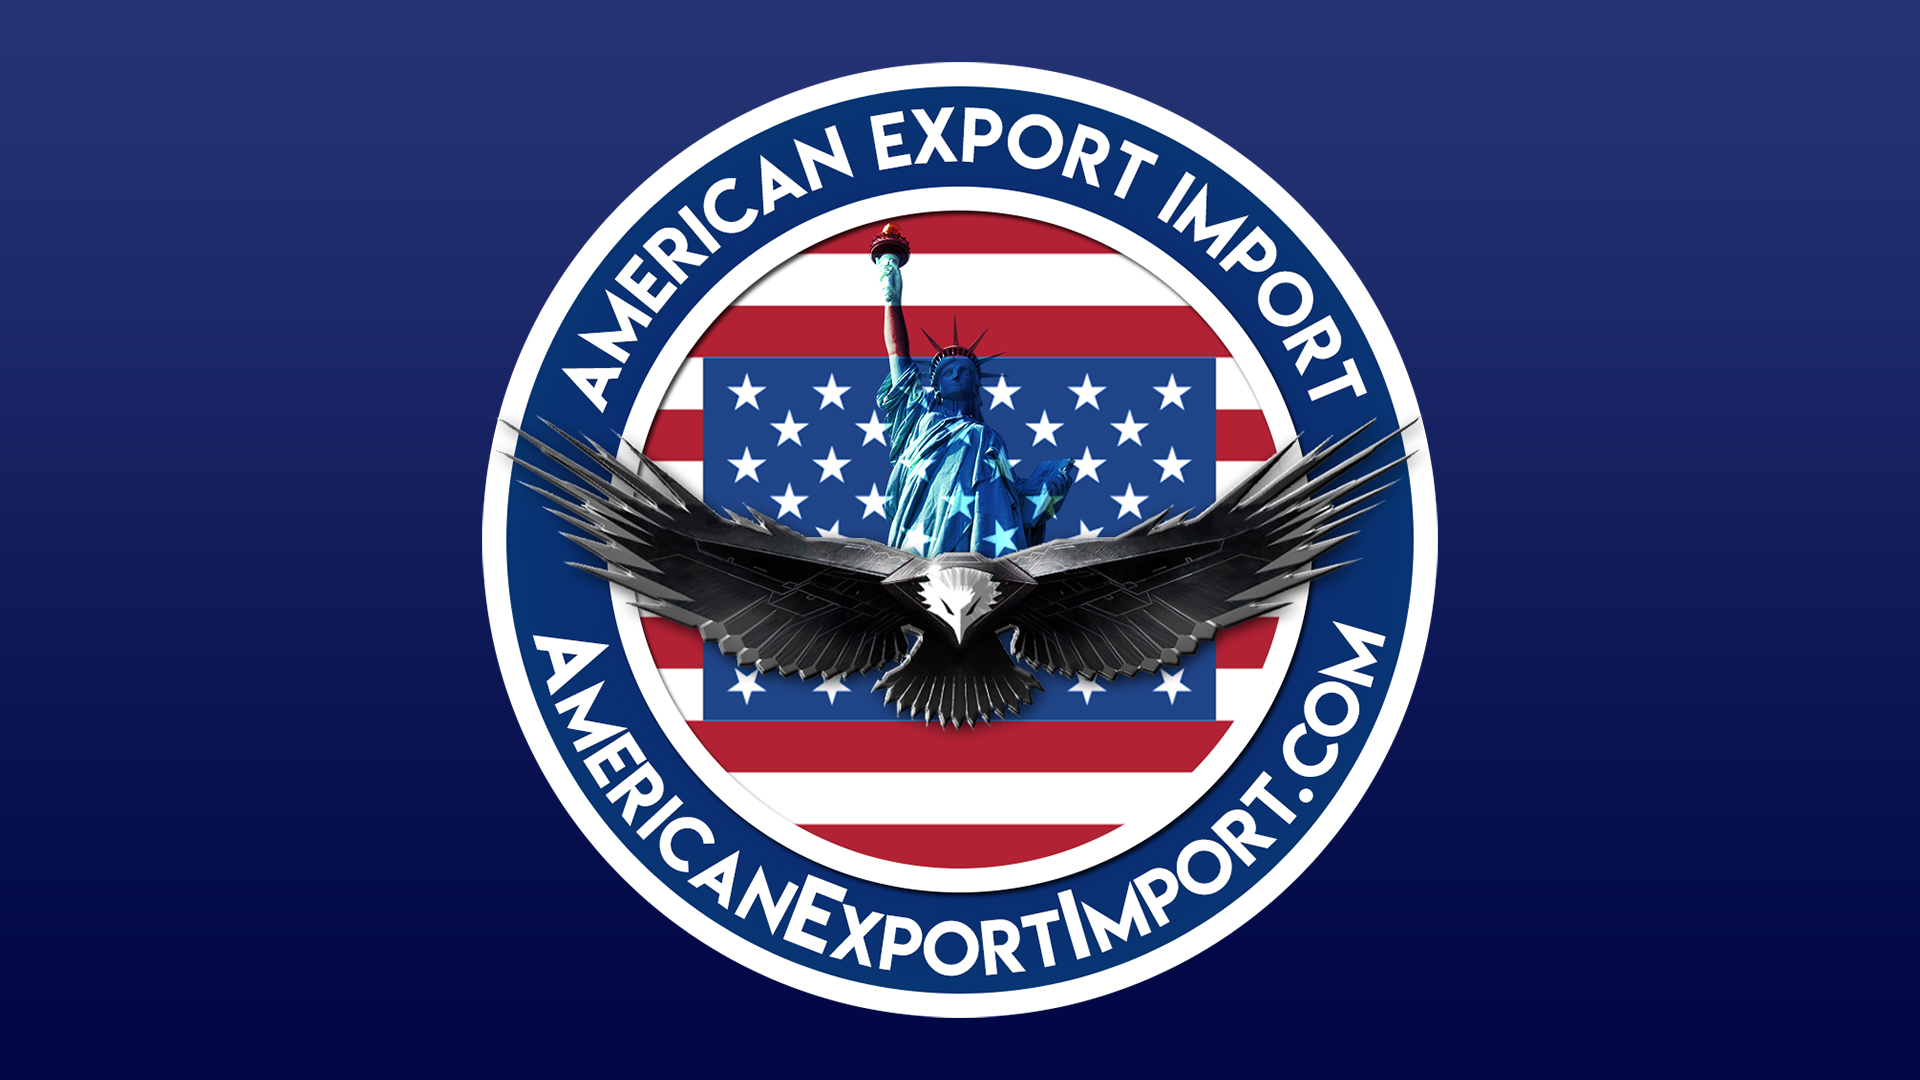 National ENQ: The Only Solution Is an Export Revolution – American Businesses Must Receive Support to Dramatically Increase Exports